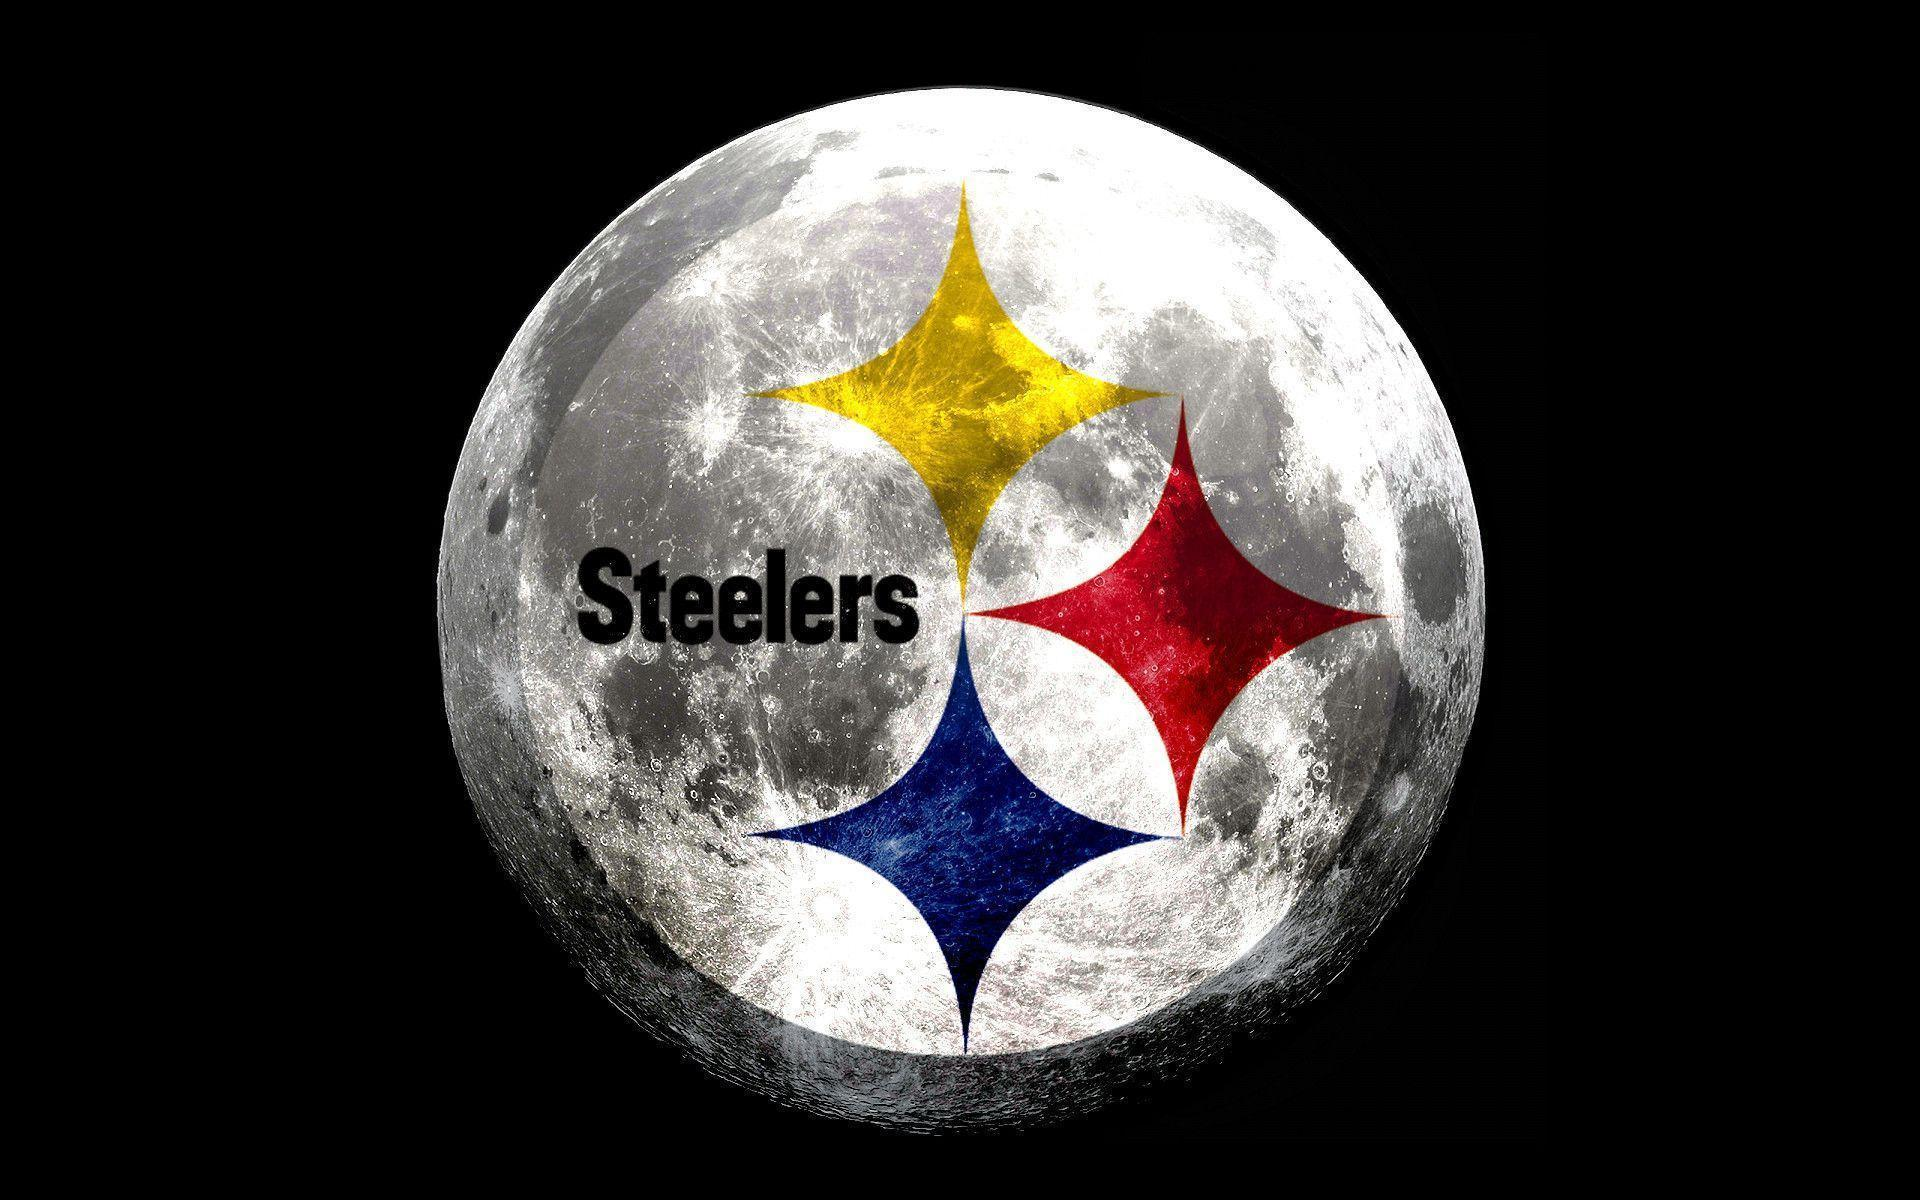 Steelers Logo Wallpapers Top Free Steelers Logo Backgrounds Wallpaperaccess